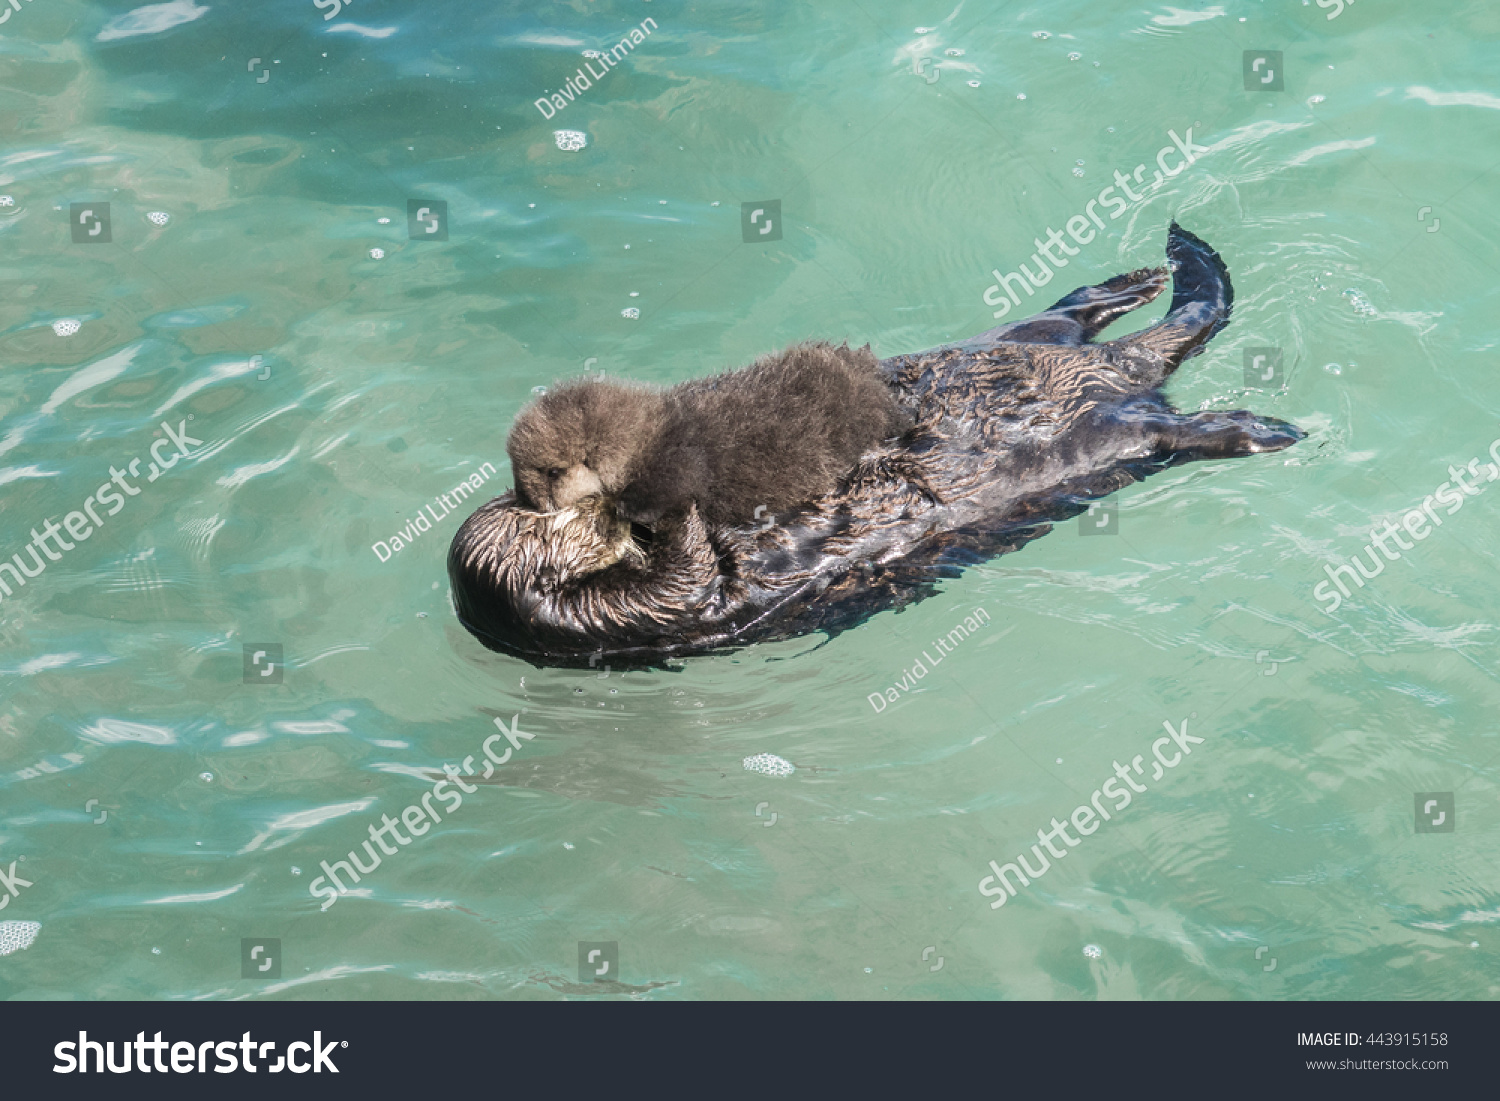 A wild mother Southern Sea Otter (Enhydra lutris) and her newborn pup float in the water of a quiet cove, in Monterey Bay, California.